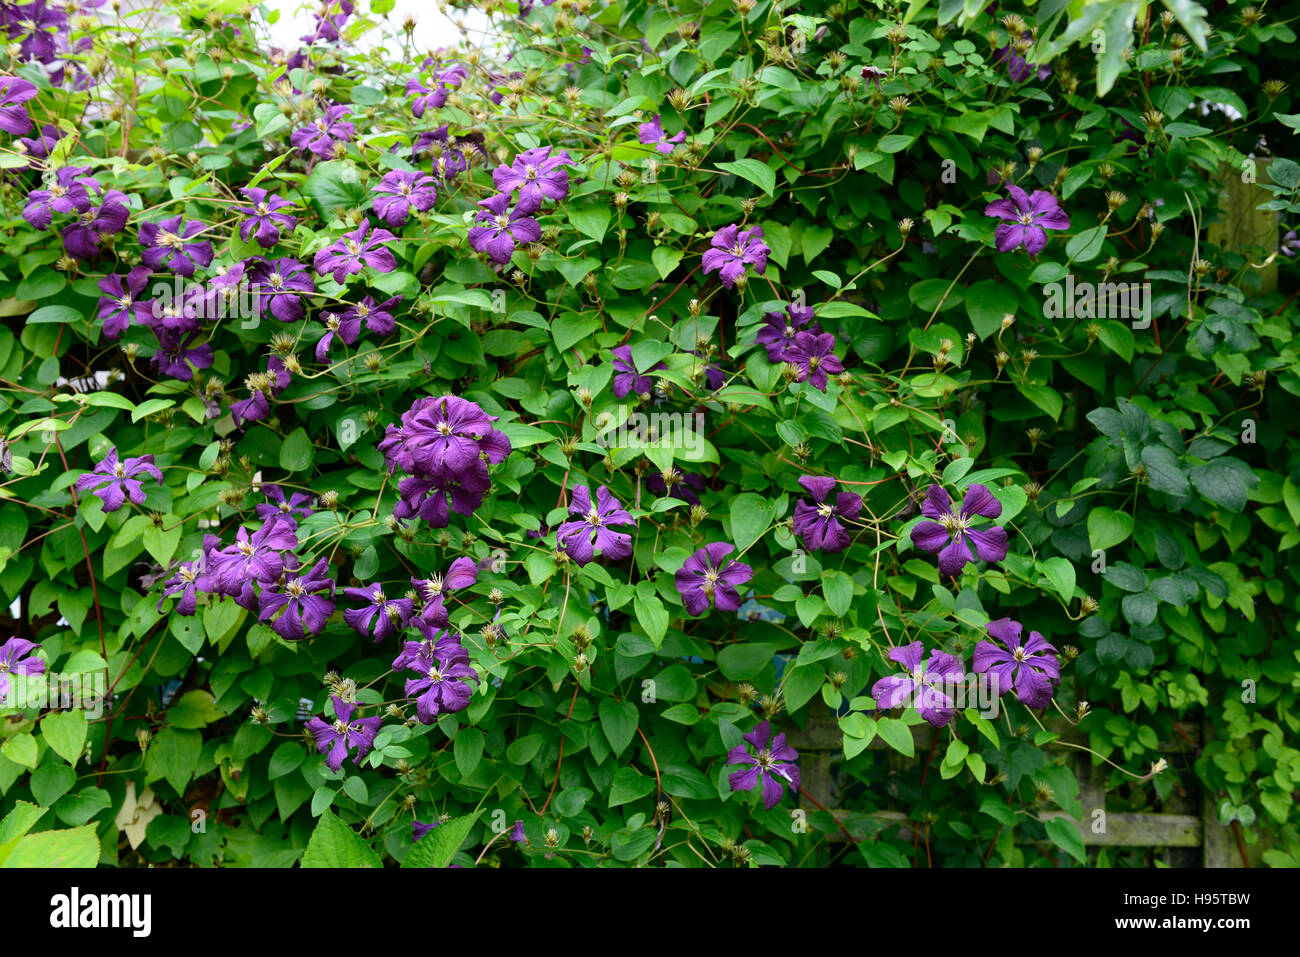 Clematis Viticella Etoile Violette Purple Flowers Flower Flowering